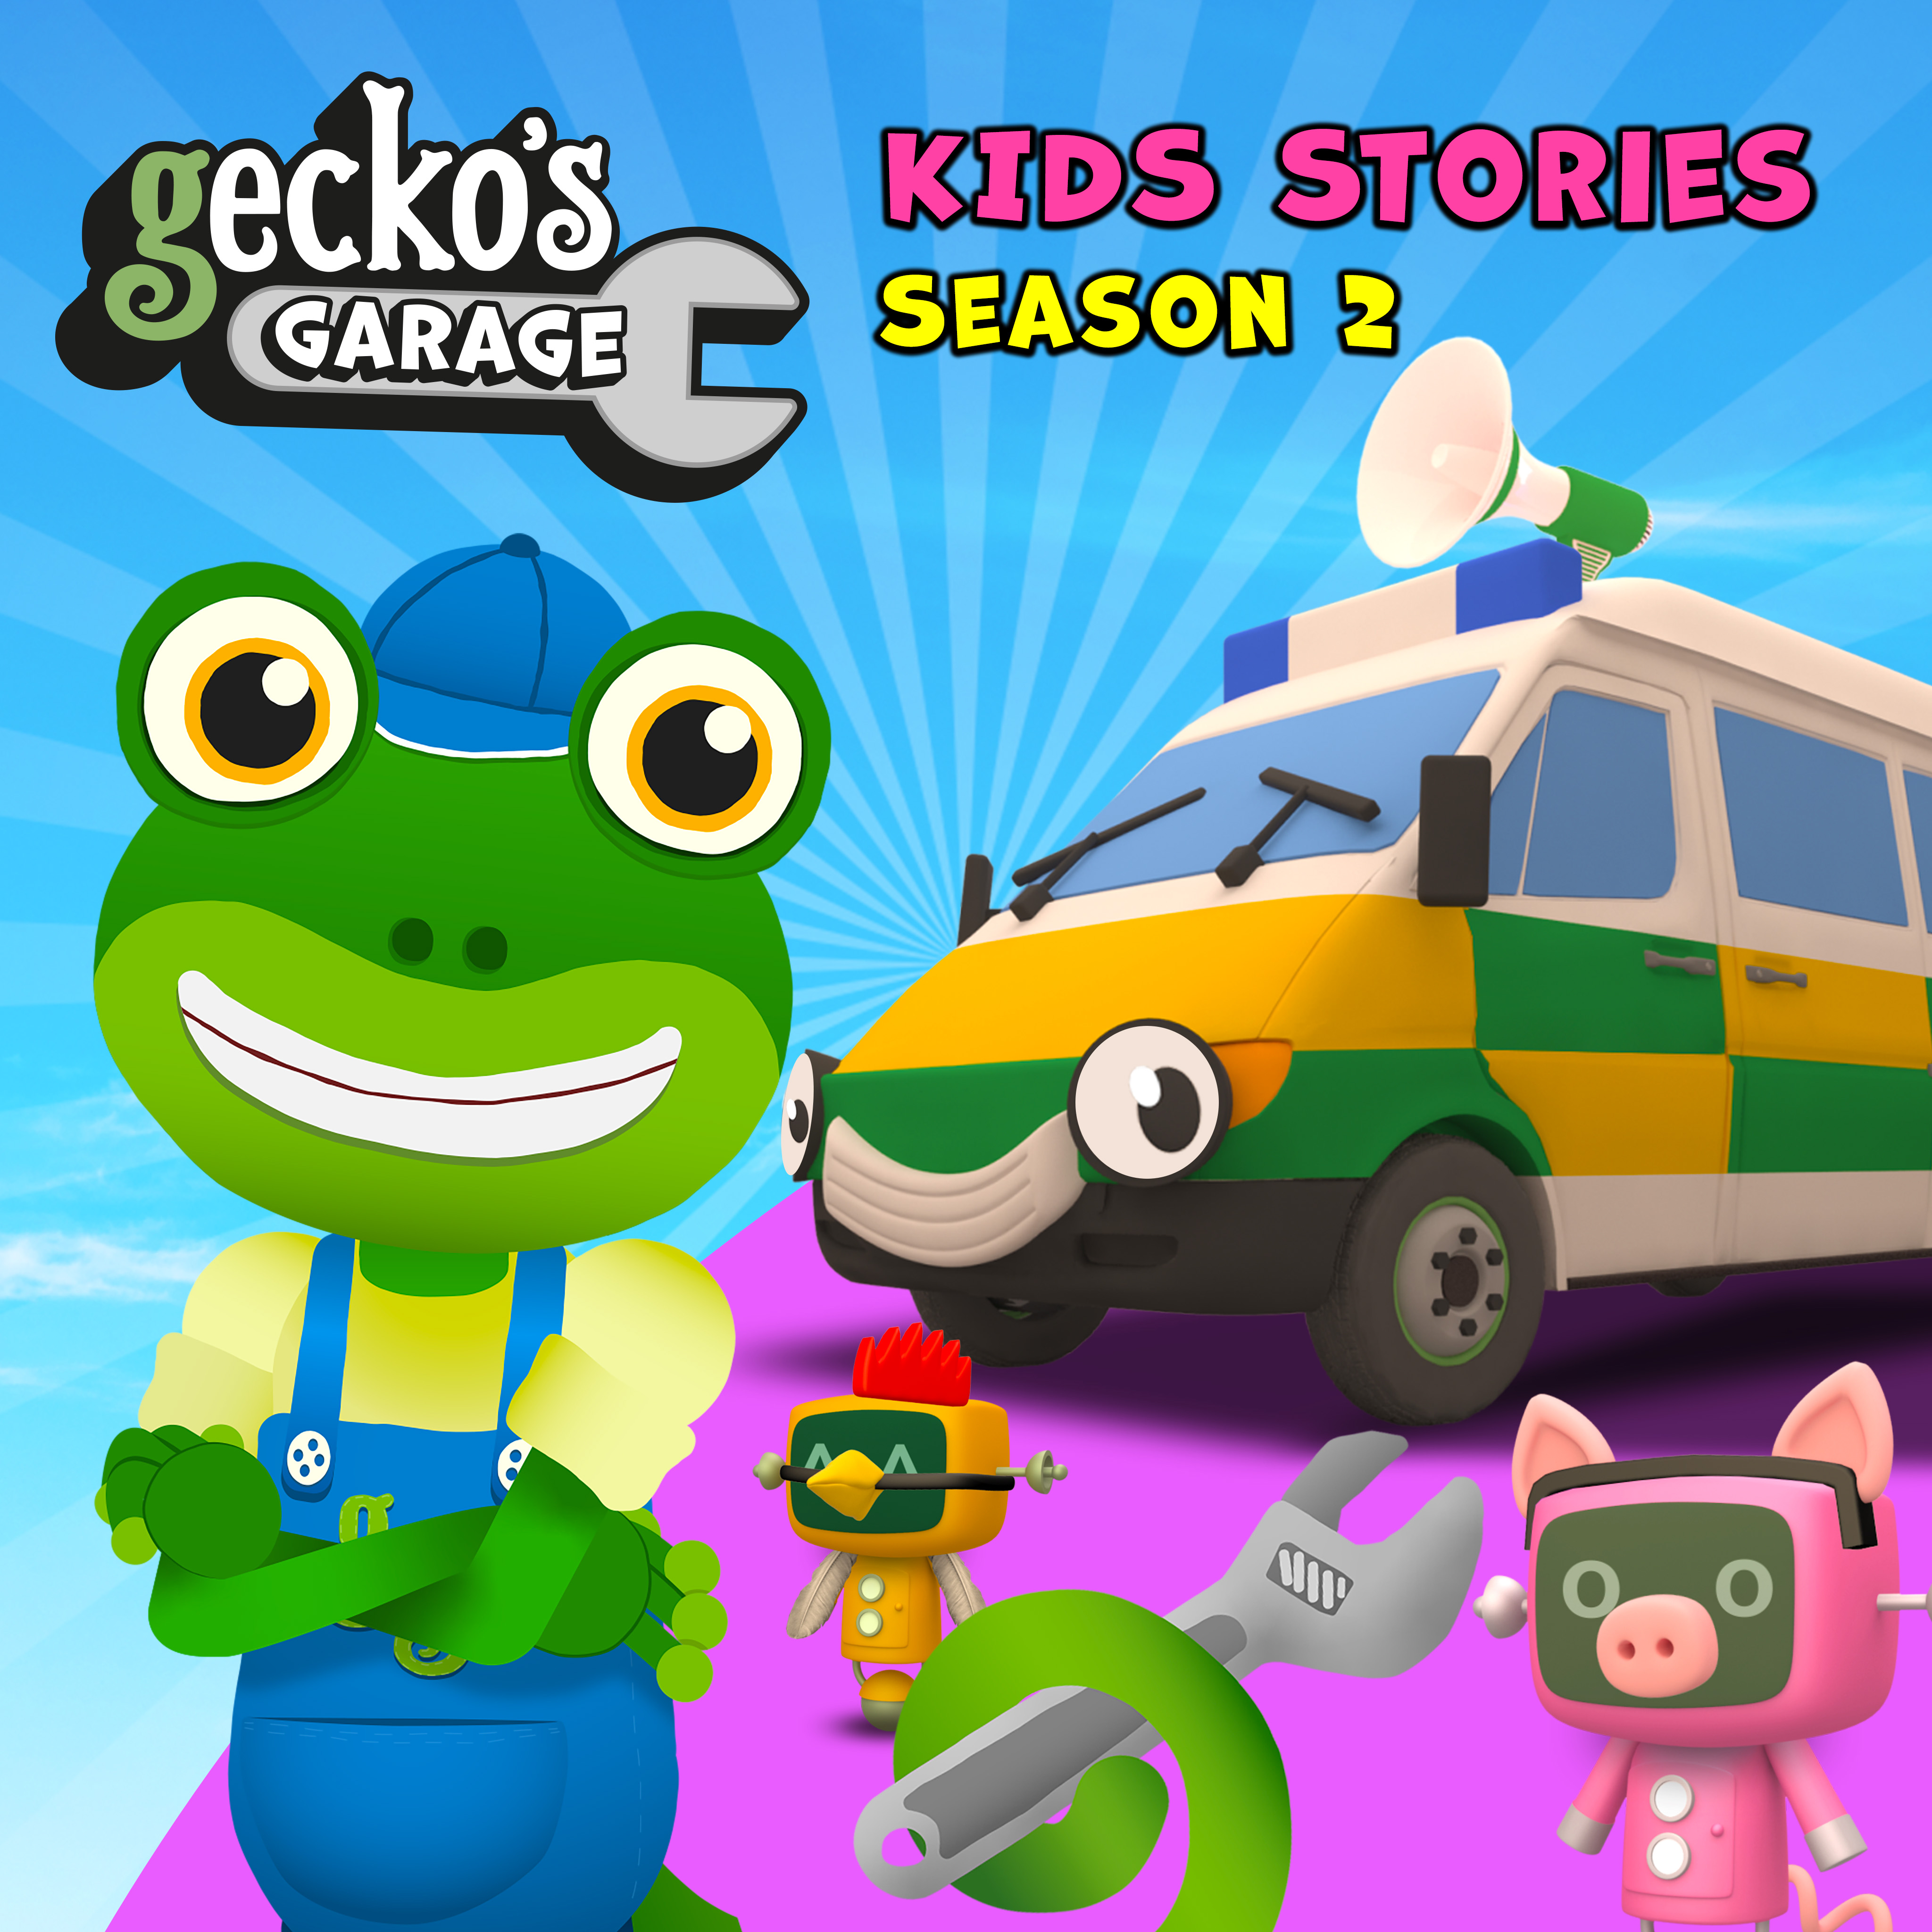 Gecko's Garage Stories Season 2